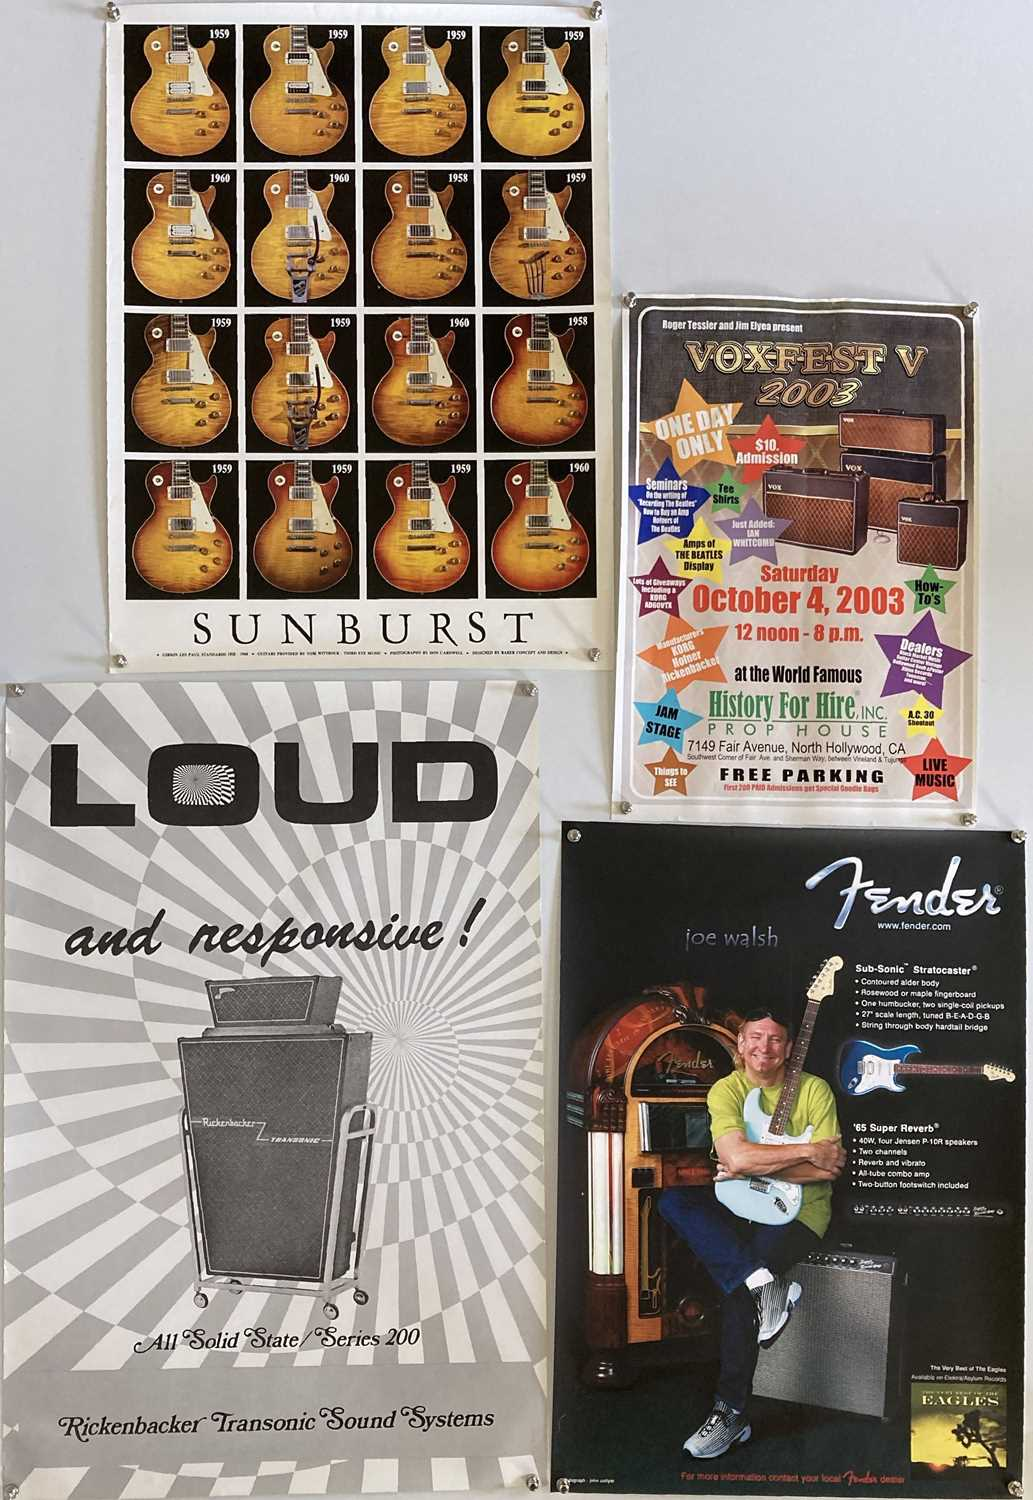 GUITAR AND AMPLIFIERS - PROMOTIONAL POSTERS.